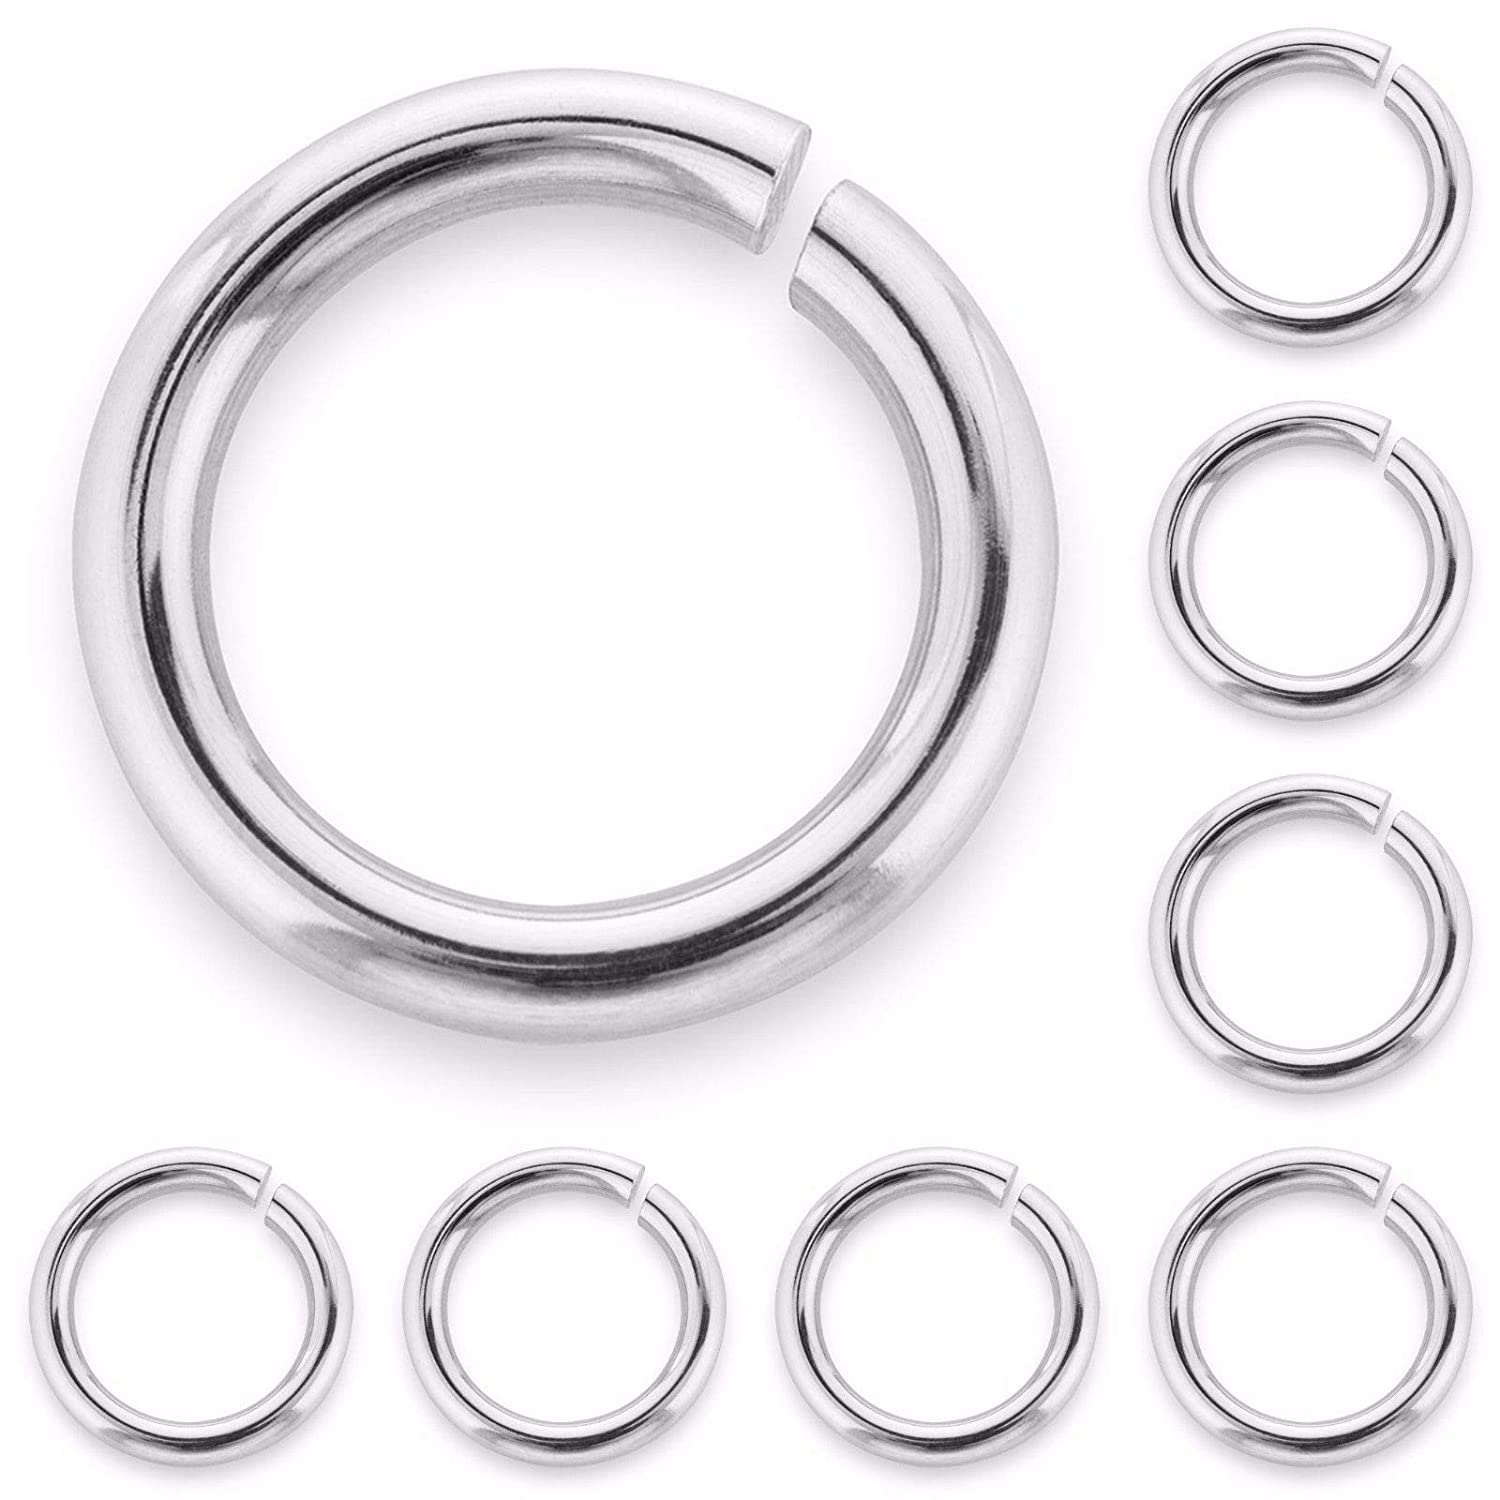 5 x Solid Sterling Silver Jump Rings - Open 6mm Good Quality Heavy Strong na